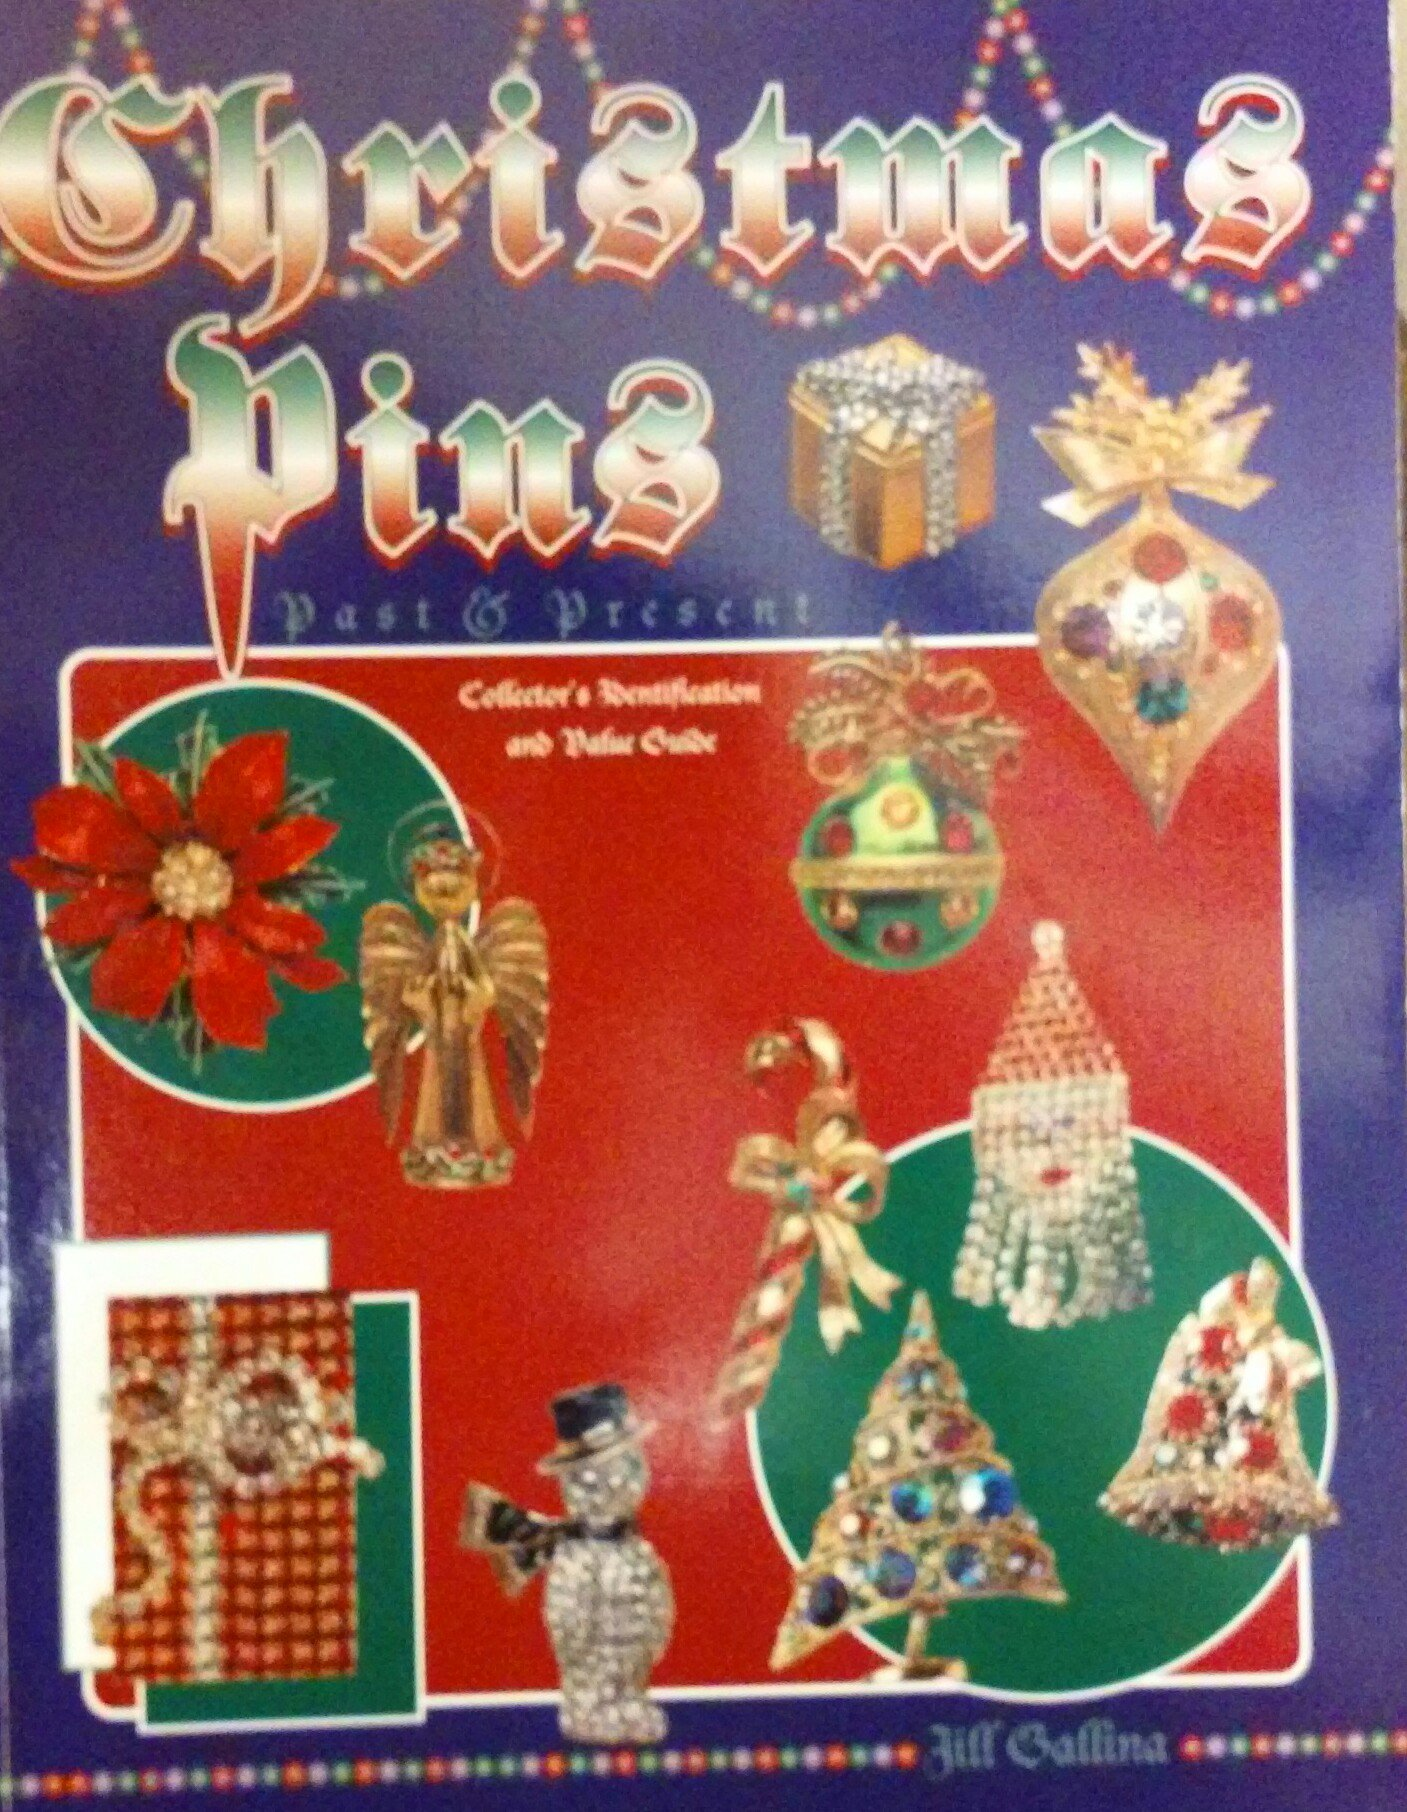 christmas pins past and present collectors identification and value guide jill gallina michael gallina 9780891456674 amazoncom books - Christmas Pins